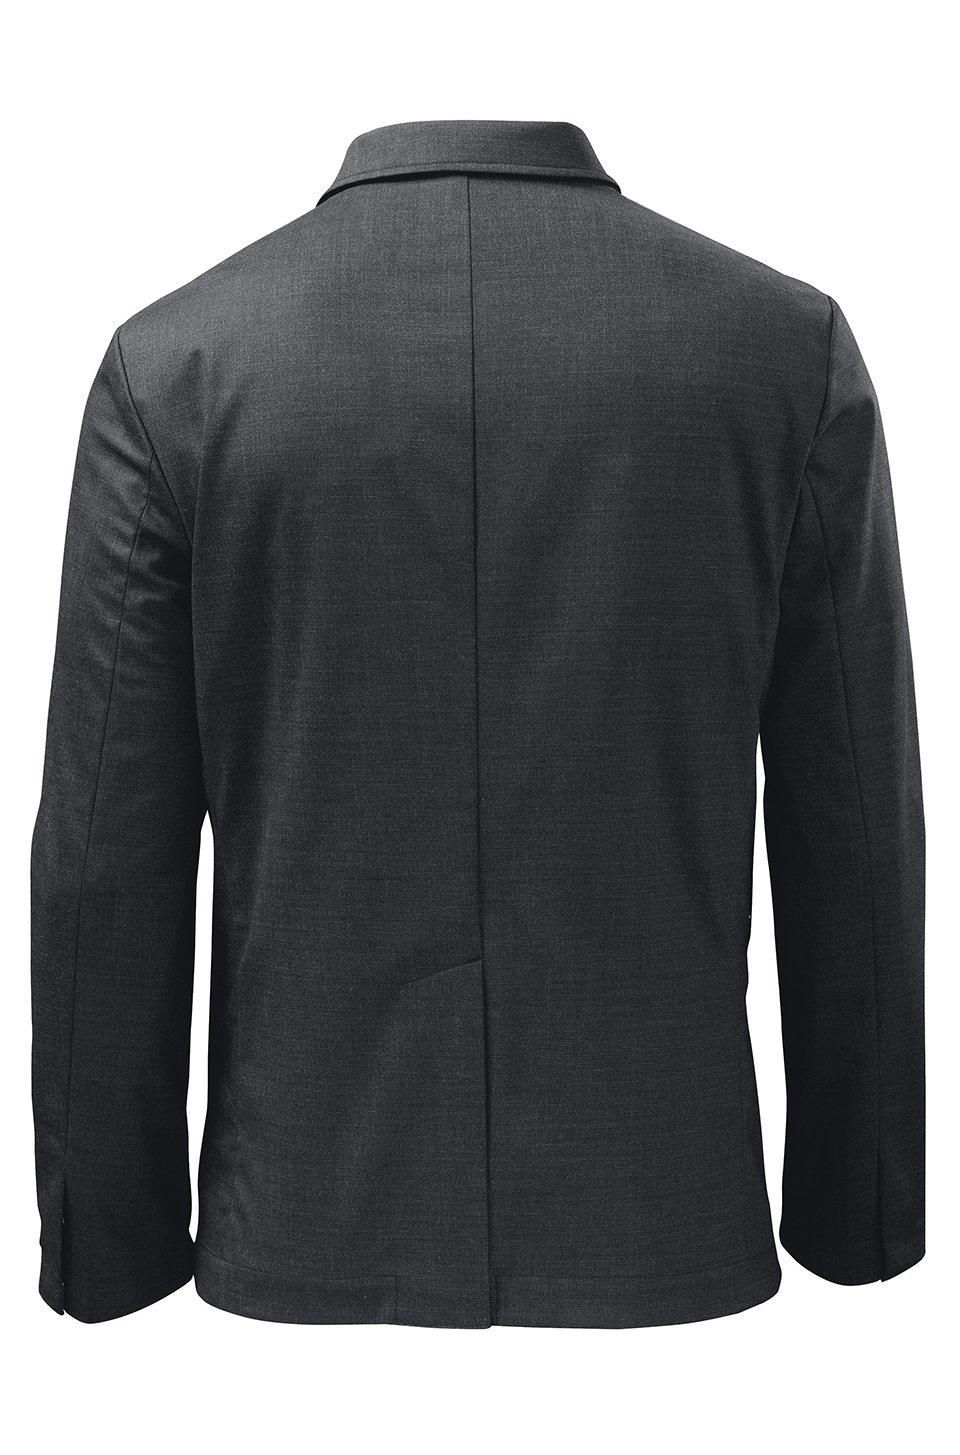 Qor Performance Suiting Blazer